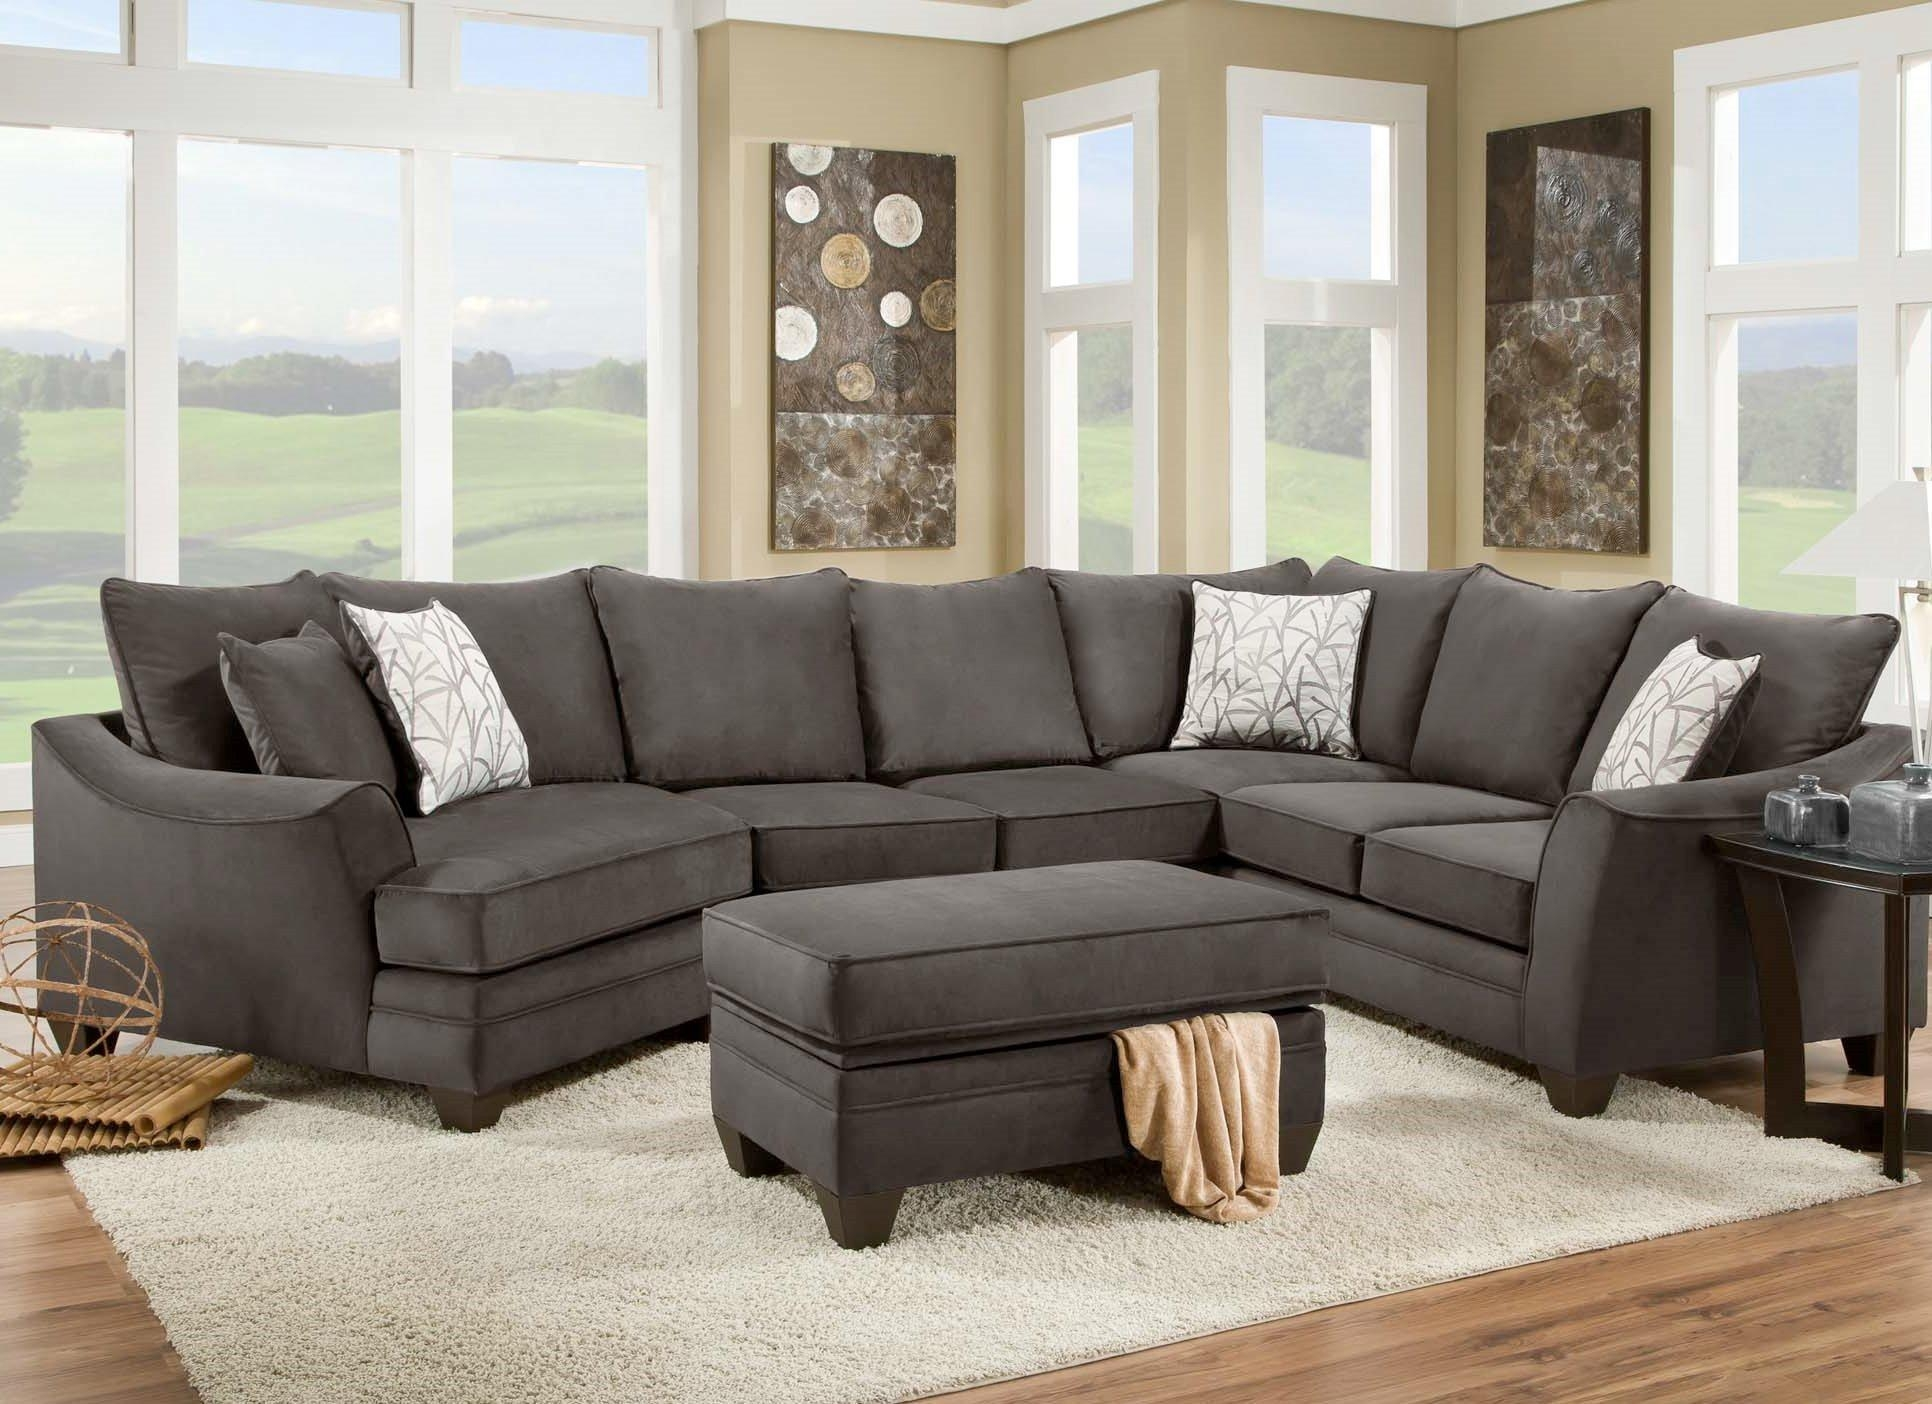 American Furniture 3810 Sectional Sofa That Seats 5 With Left Side With Regard To Sectional Cuddler (View 18 of 20)